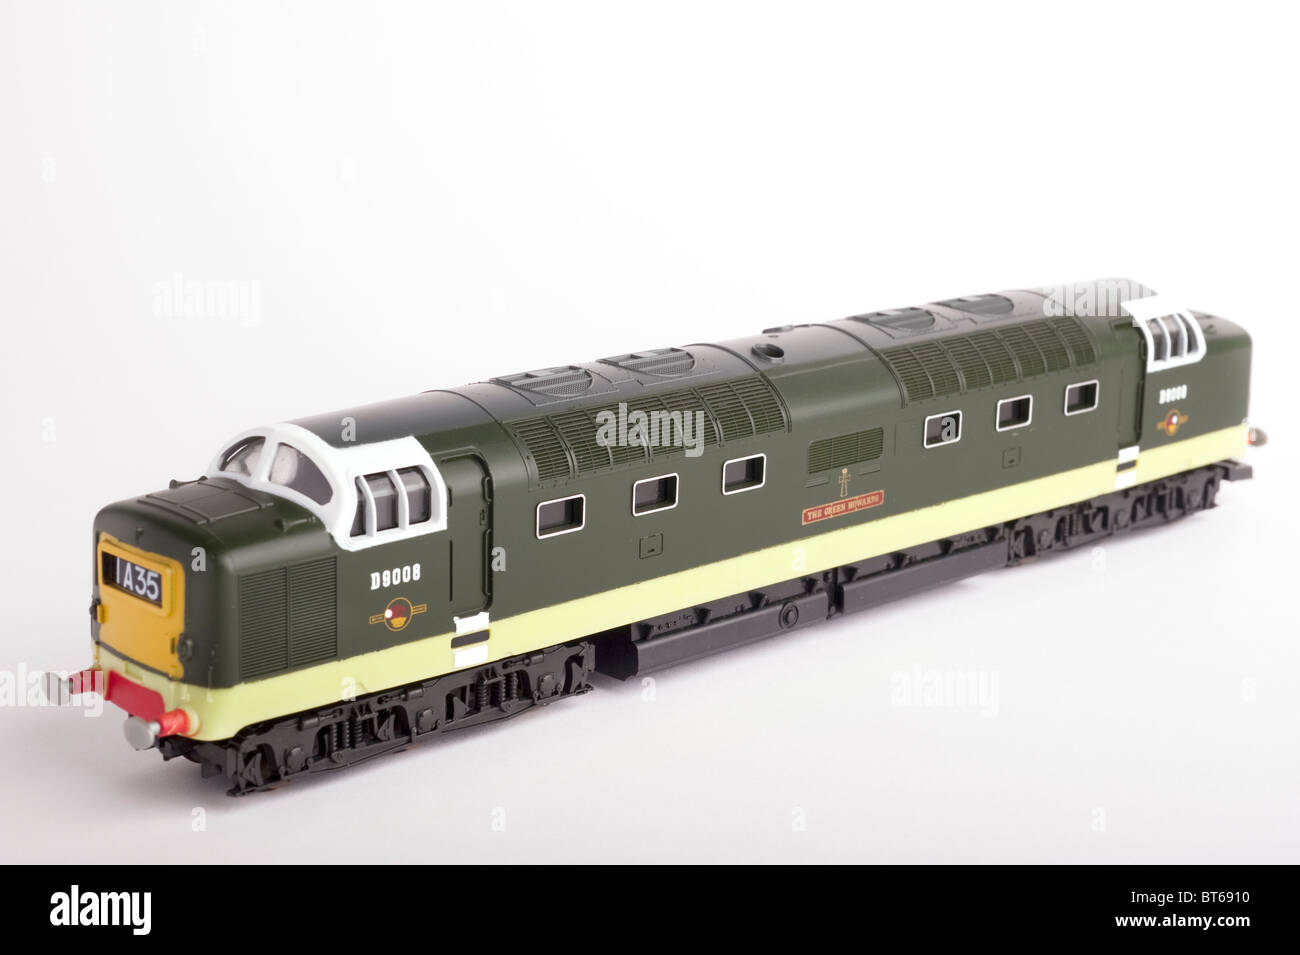 Class 55 Diesel Locomotive, BR Two Tone Green, White Background - Stock Image